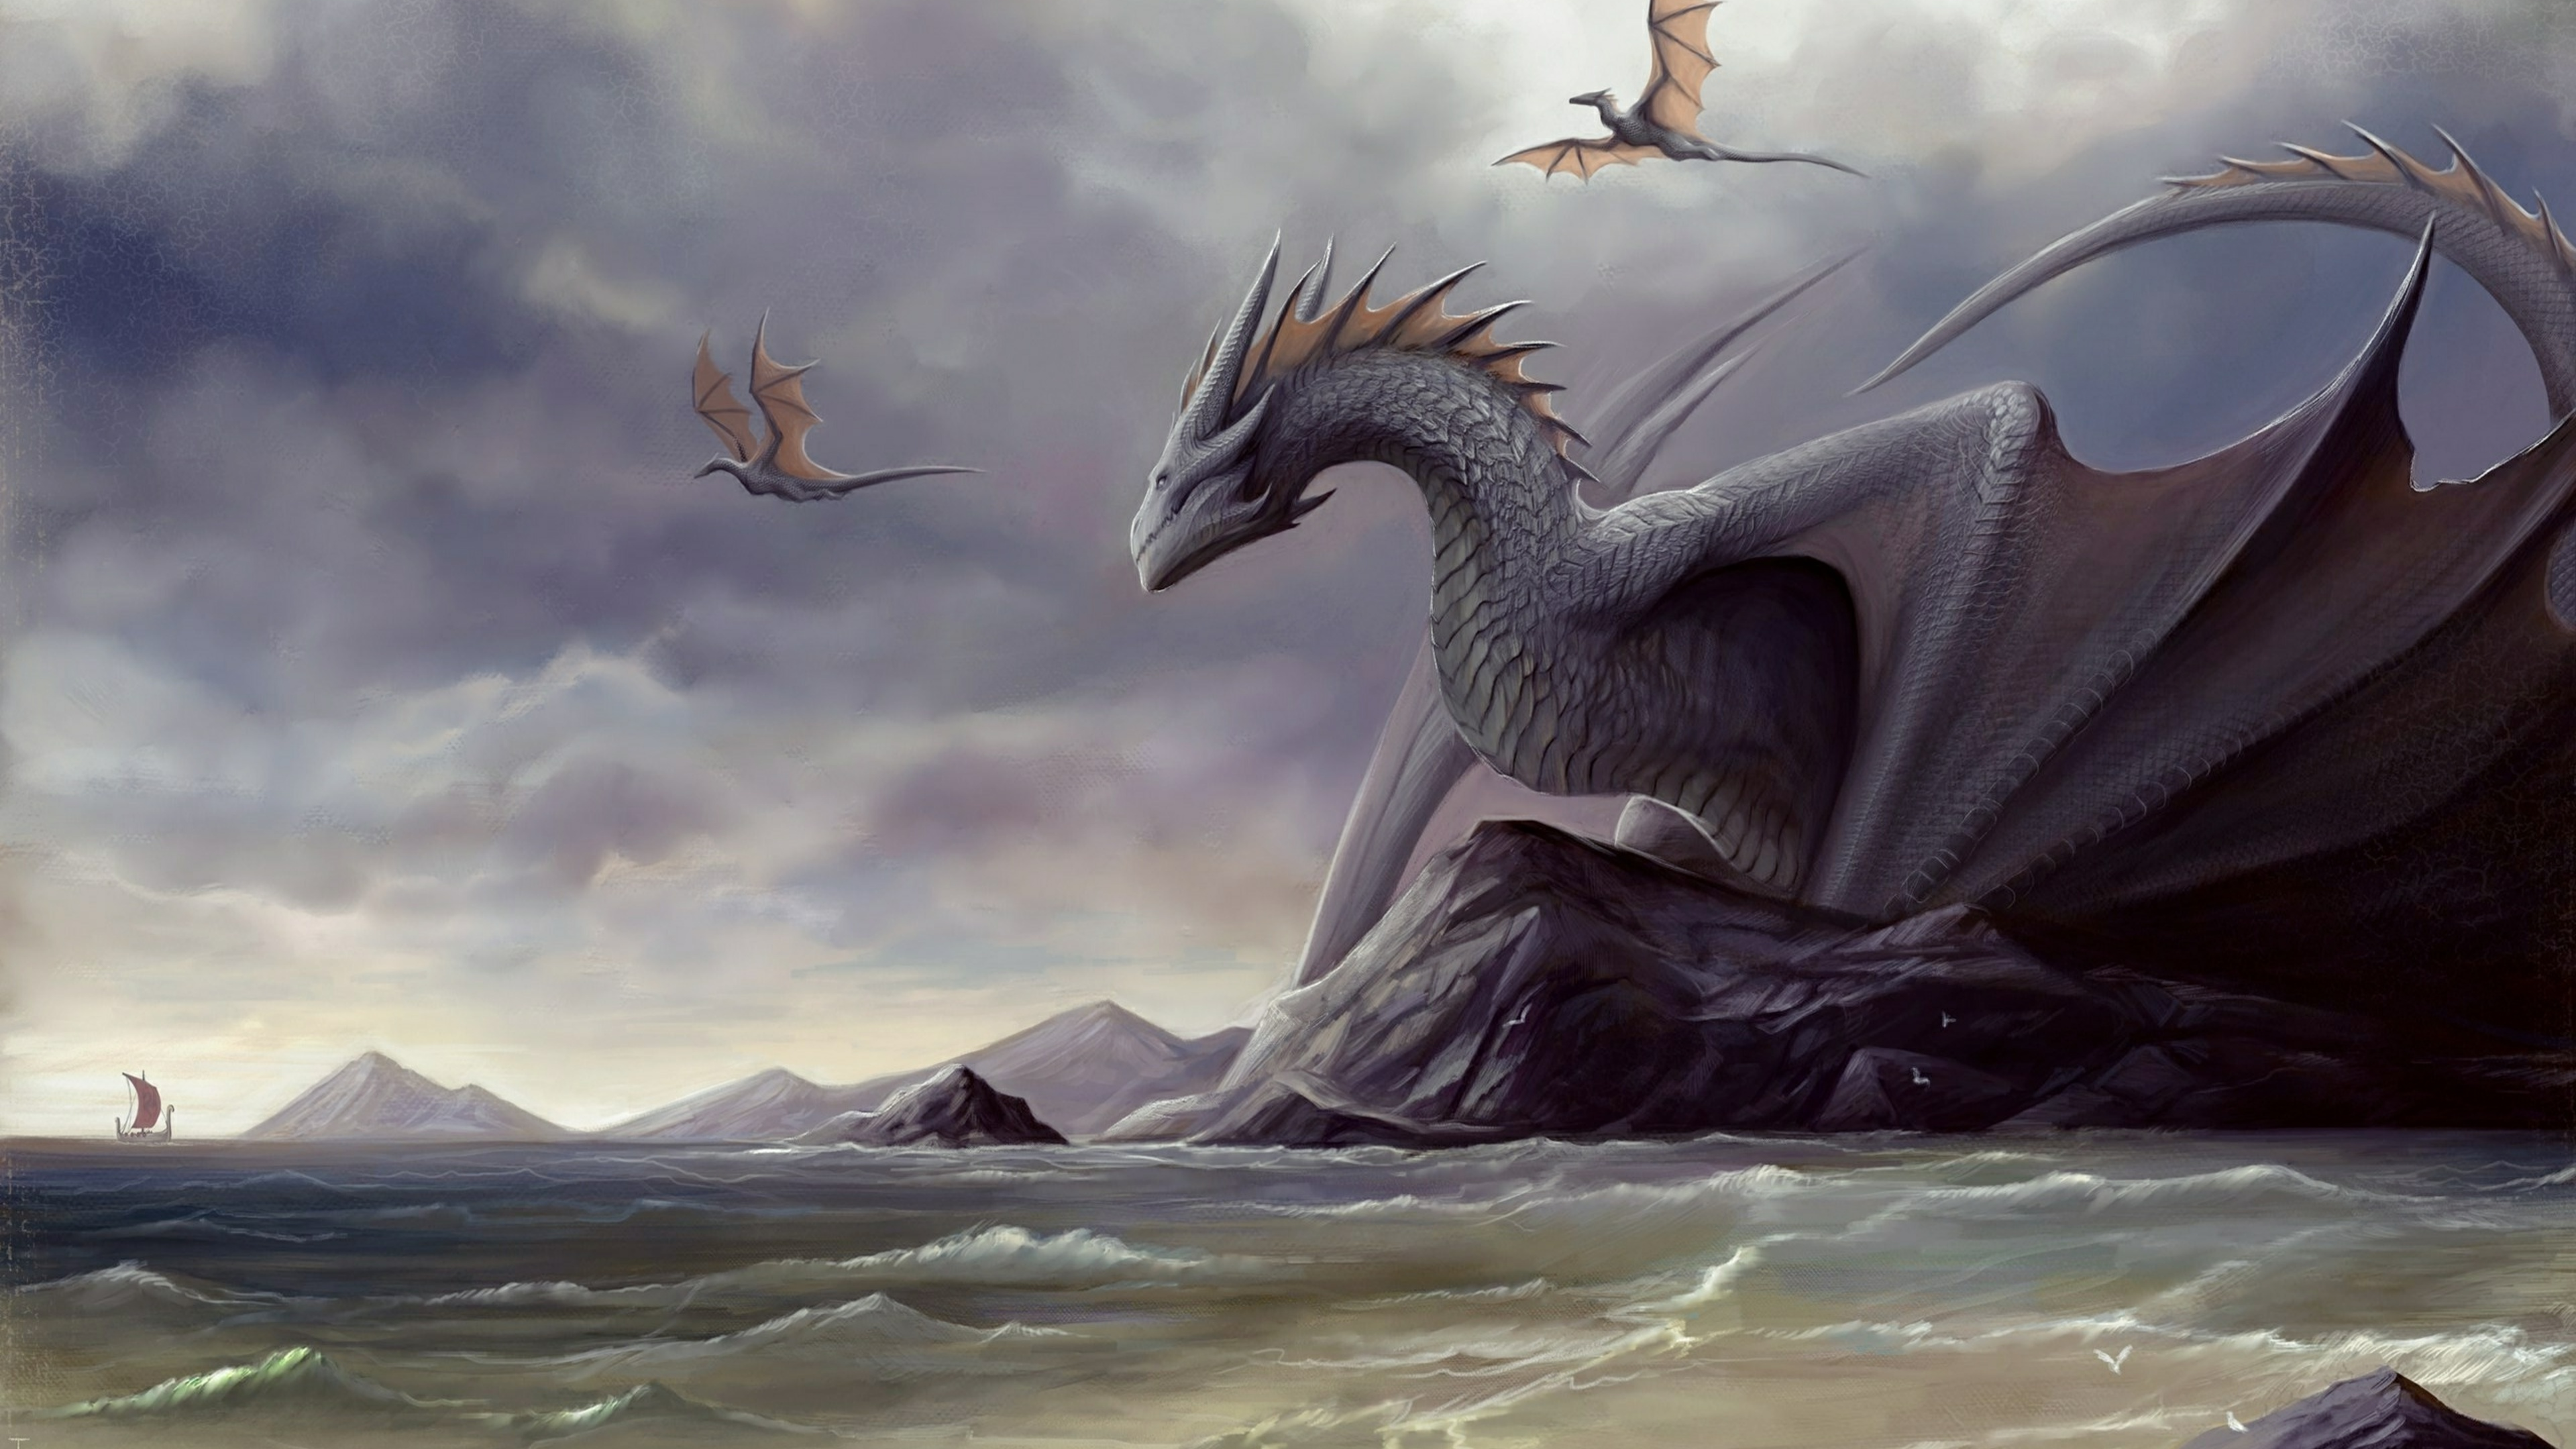 dragon-digital-art-fantasy-4b.jpg